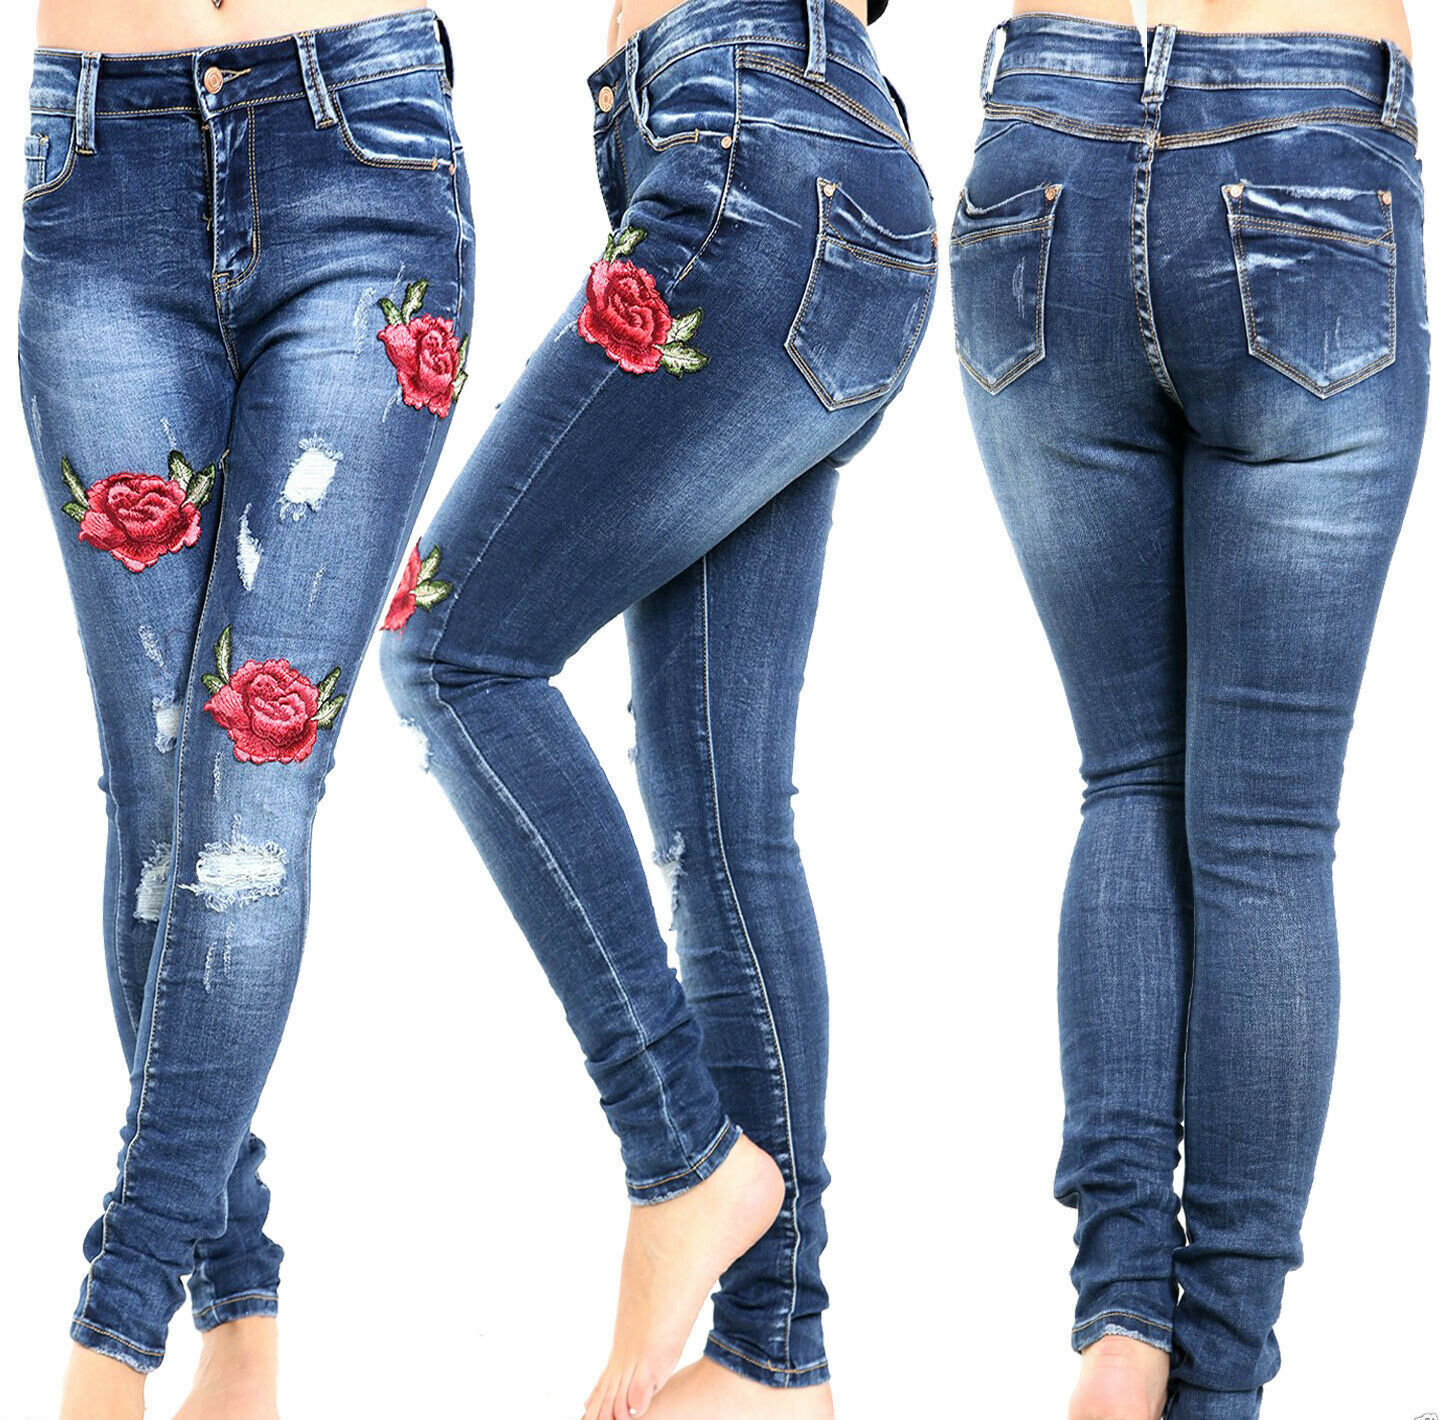 AM/_ PLUS SIZE WOMEN FLORAL EMBROIDERY HIGH WAIST SKINNY JEANS DENIM LONG PANTS N